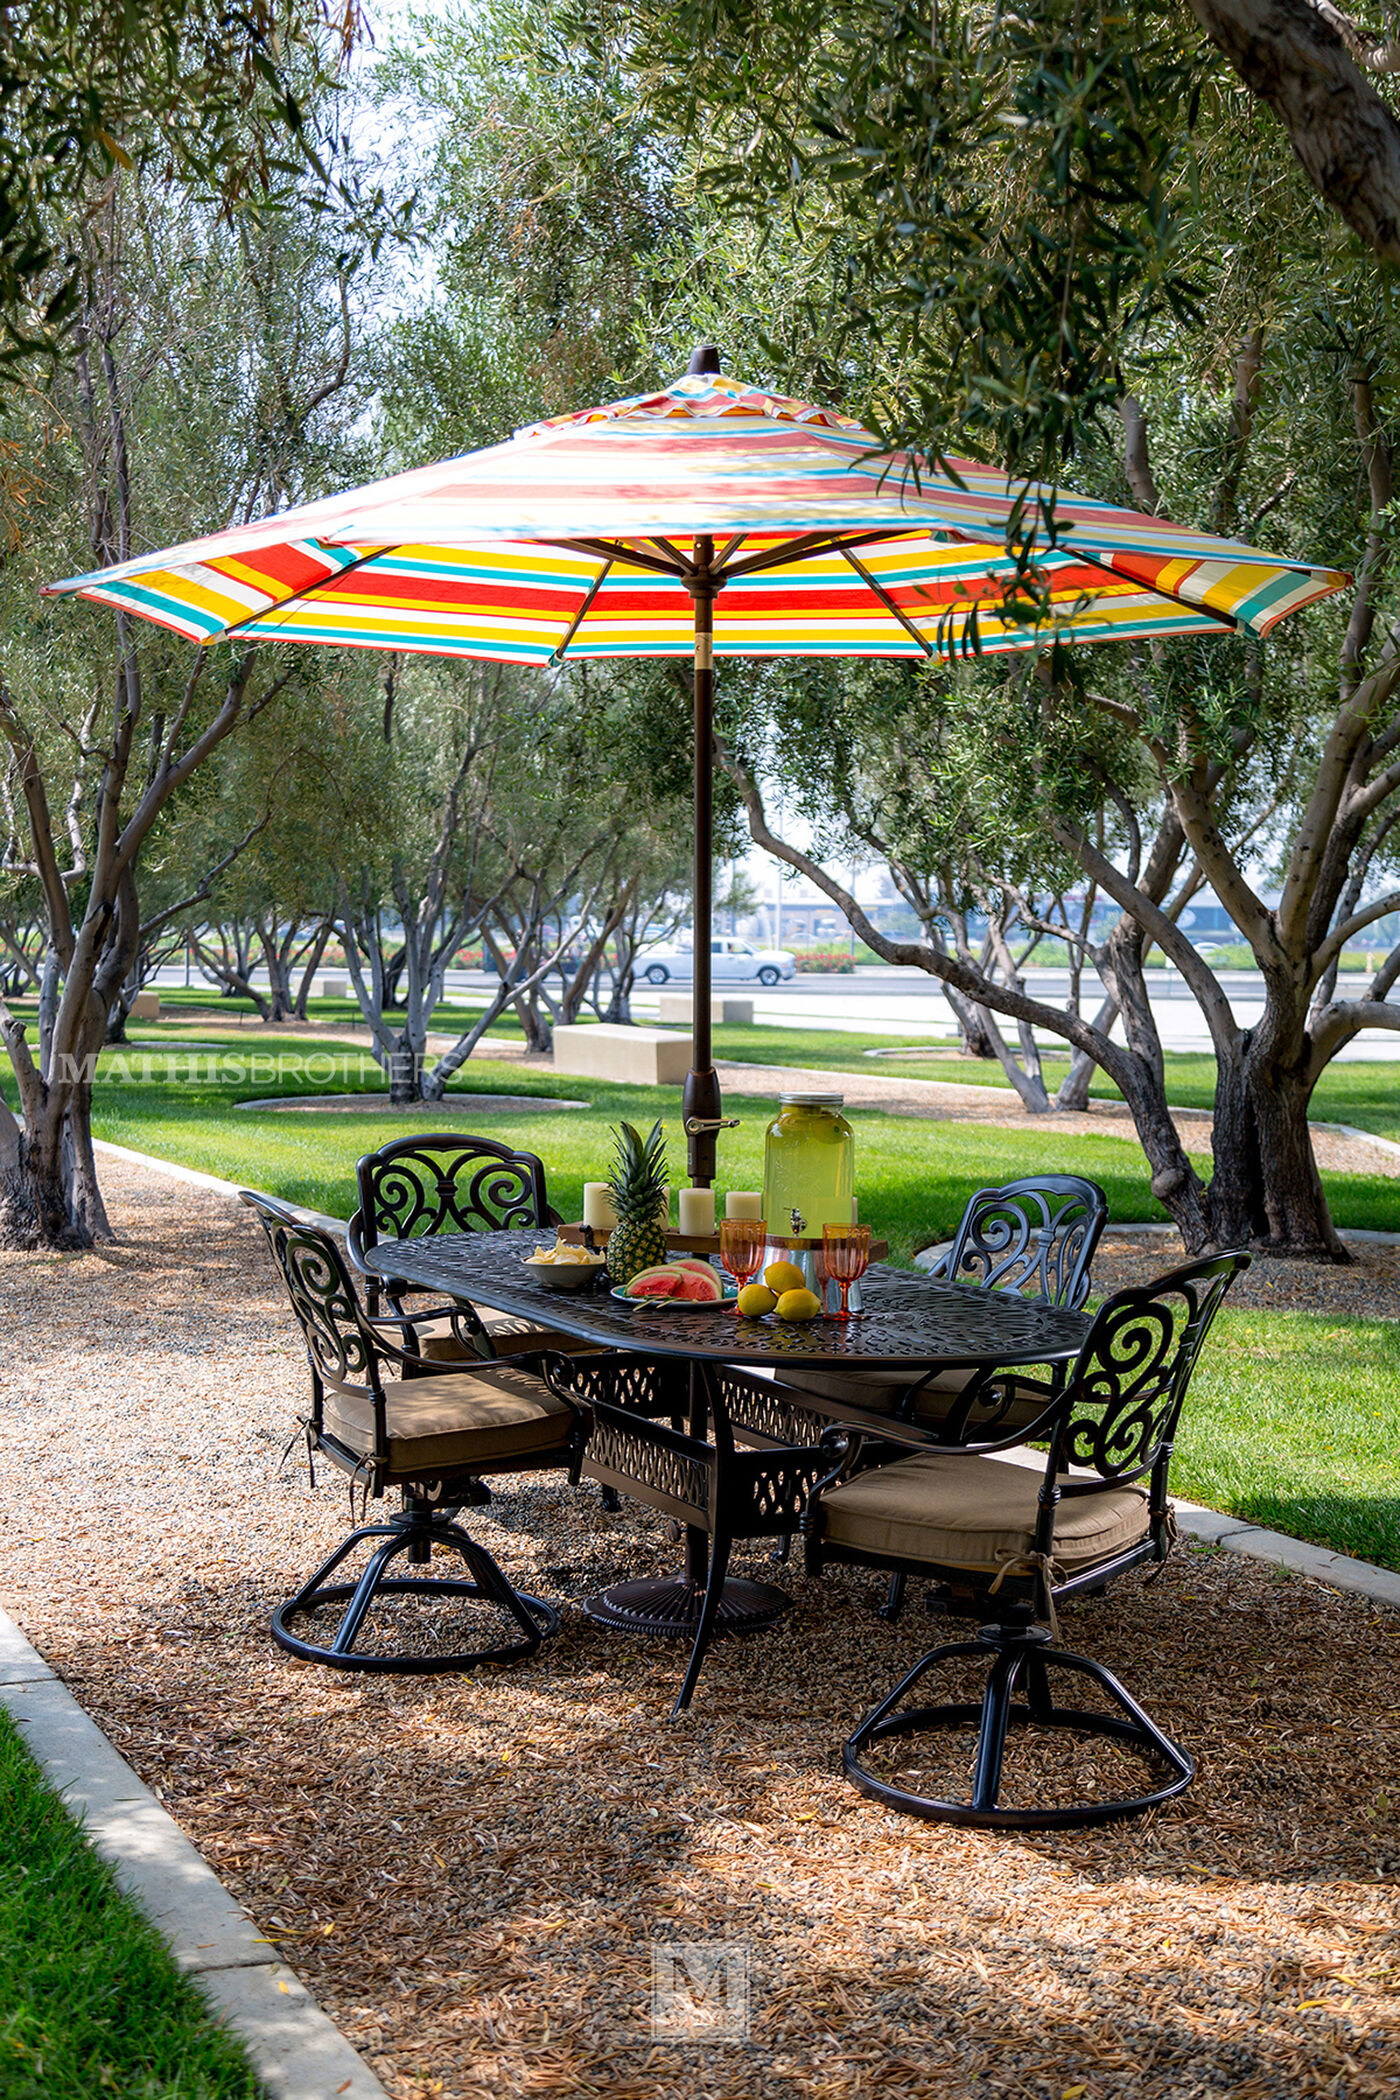 Mathis Brothers Patio Furniture world source st. louis oval table | mathis brothers furniture